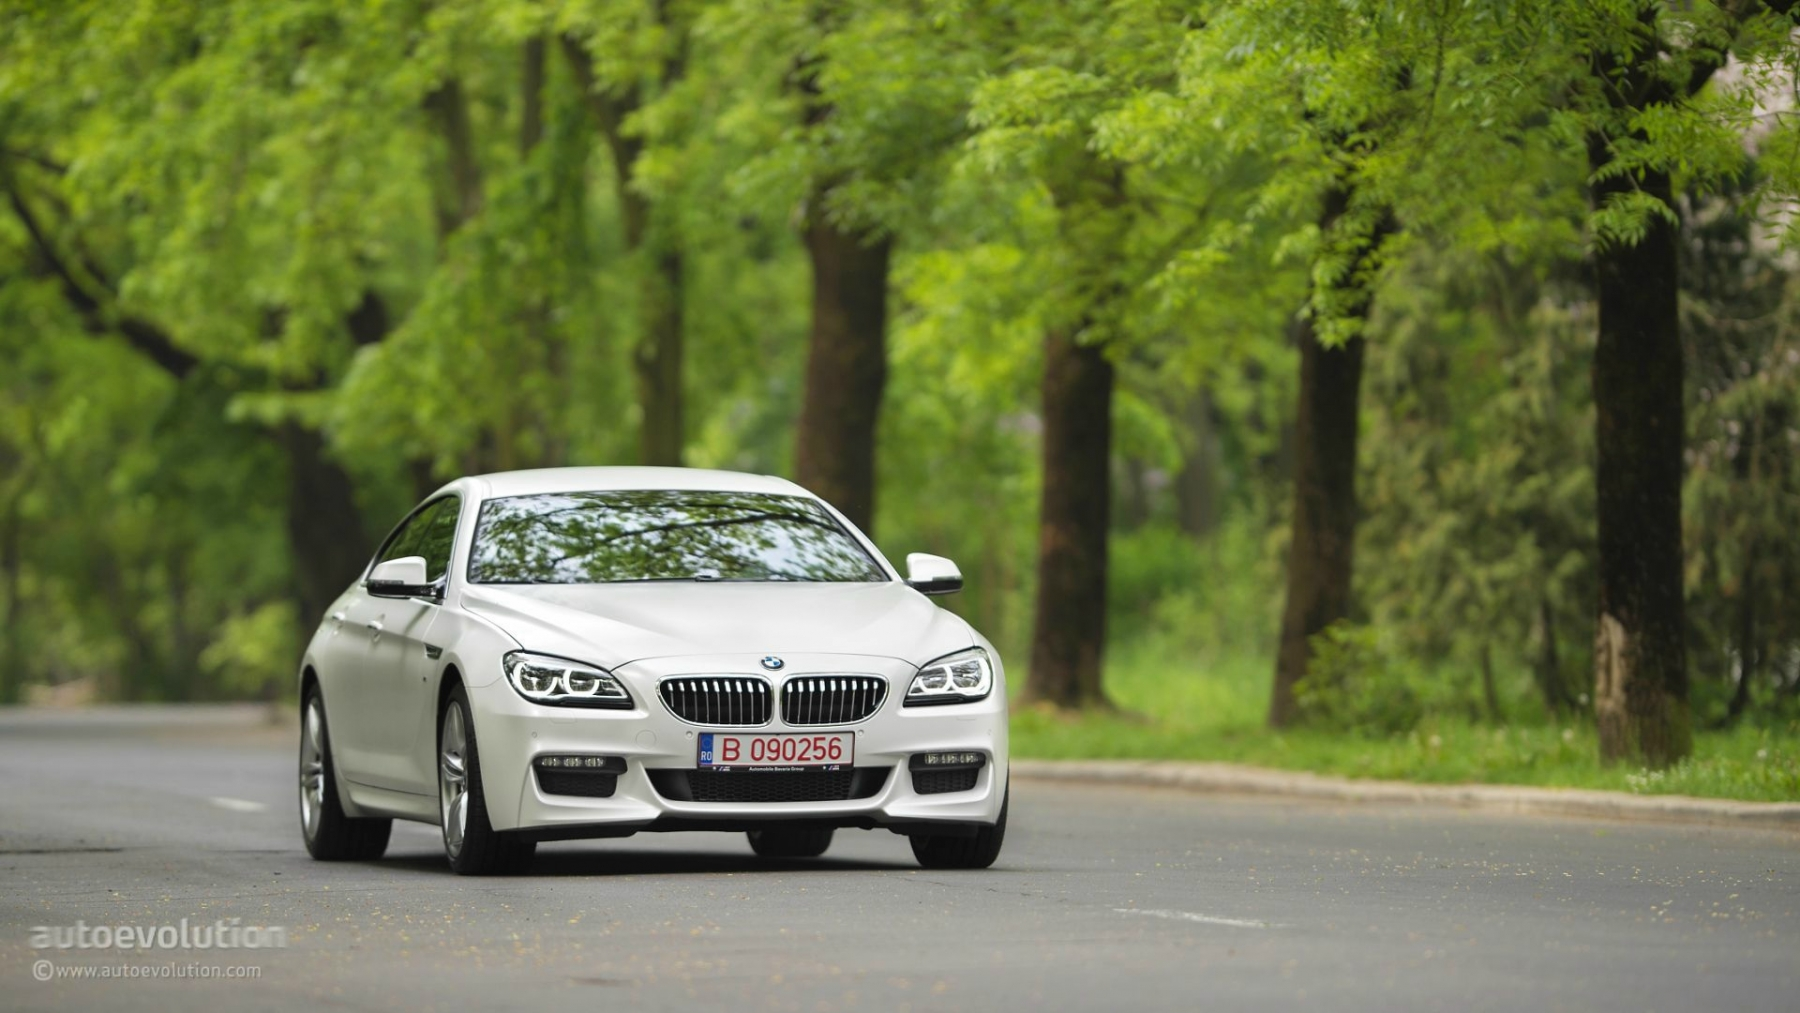 Bmw 6 Series Hd Wallpapers Background Images Photos